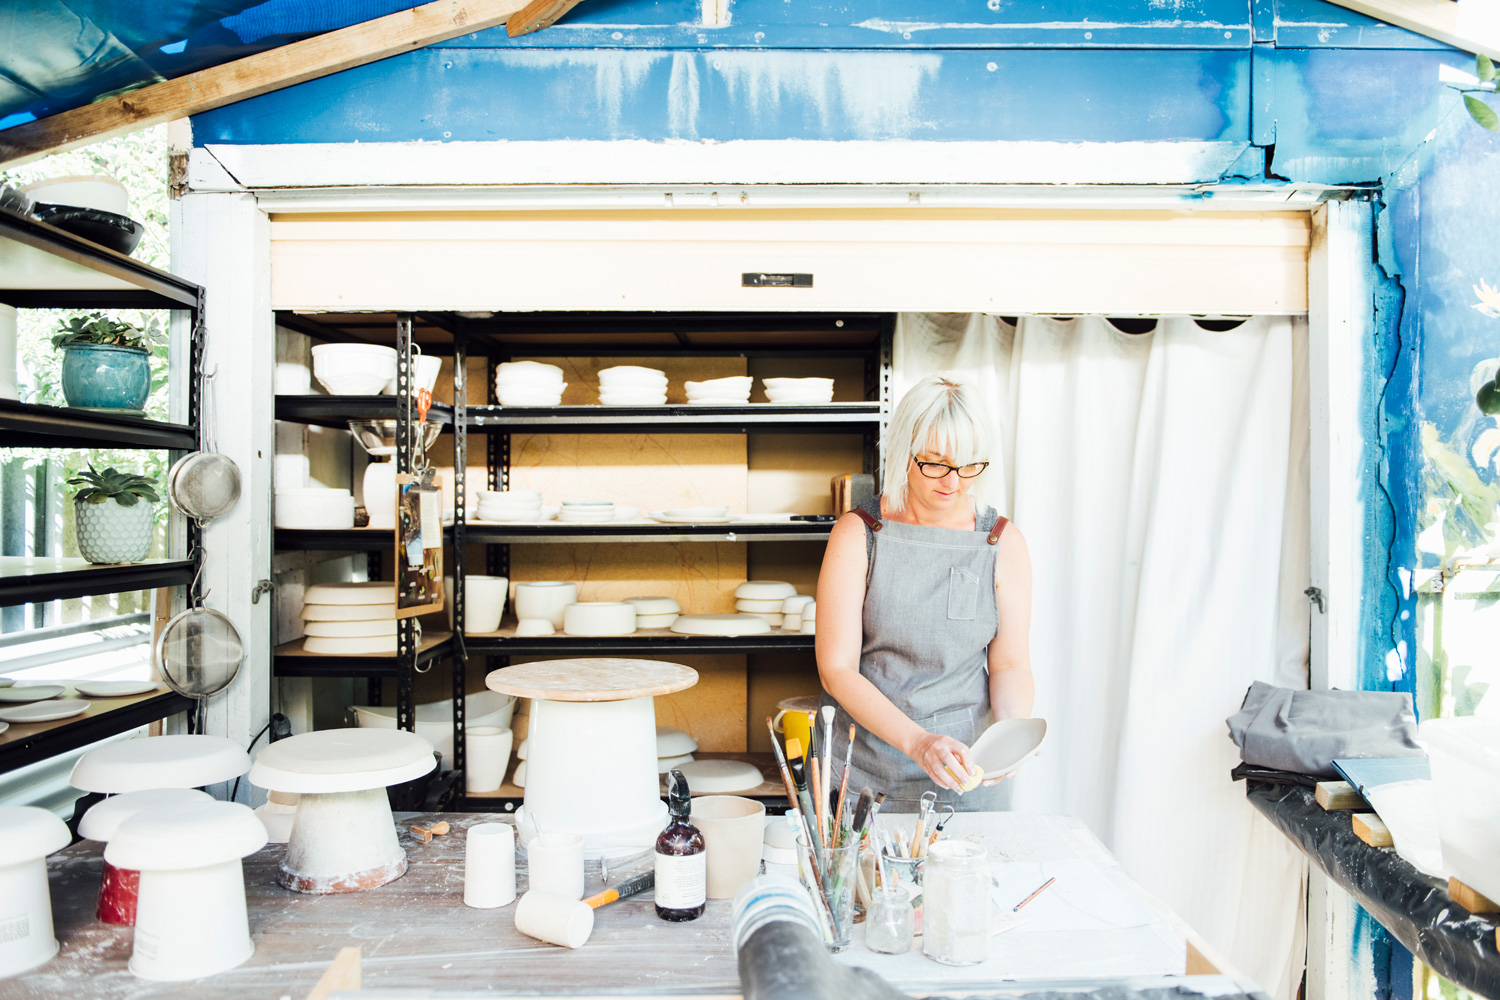 047-katie-mitchell-in-the-studio-perth-ceramicist-winterwares.jpg